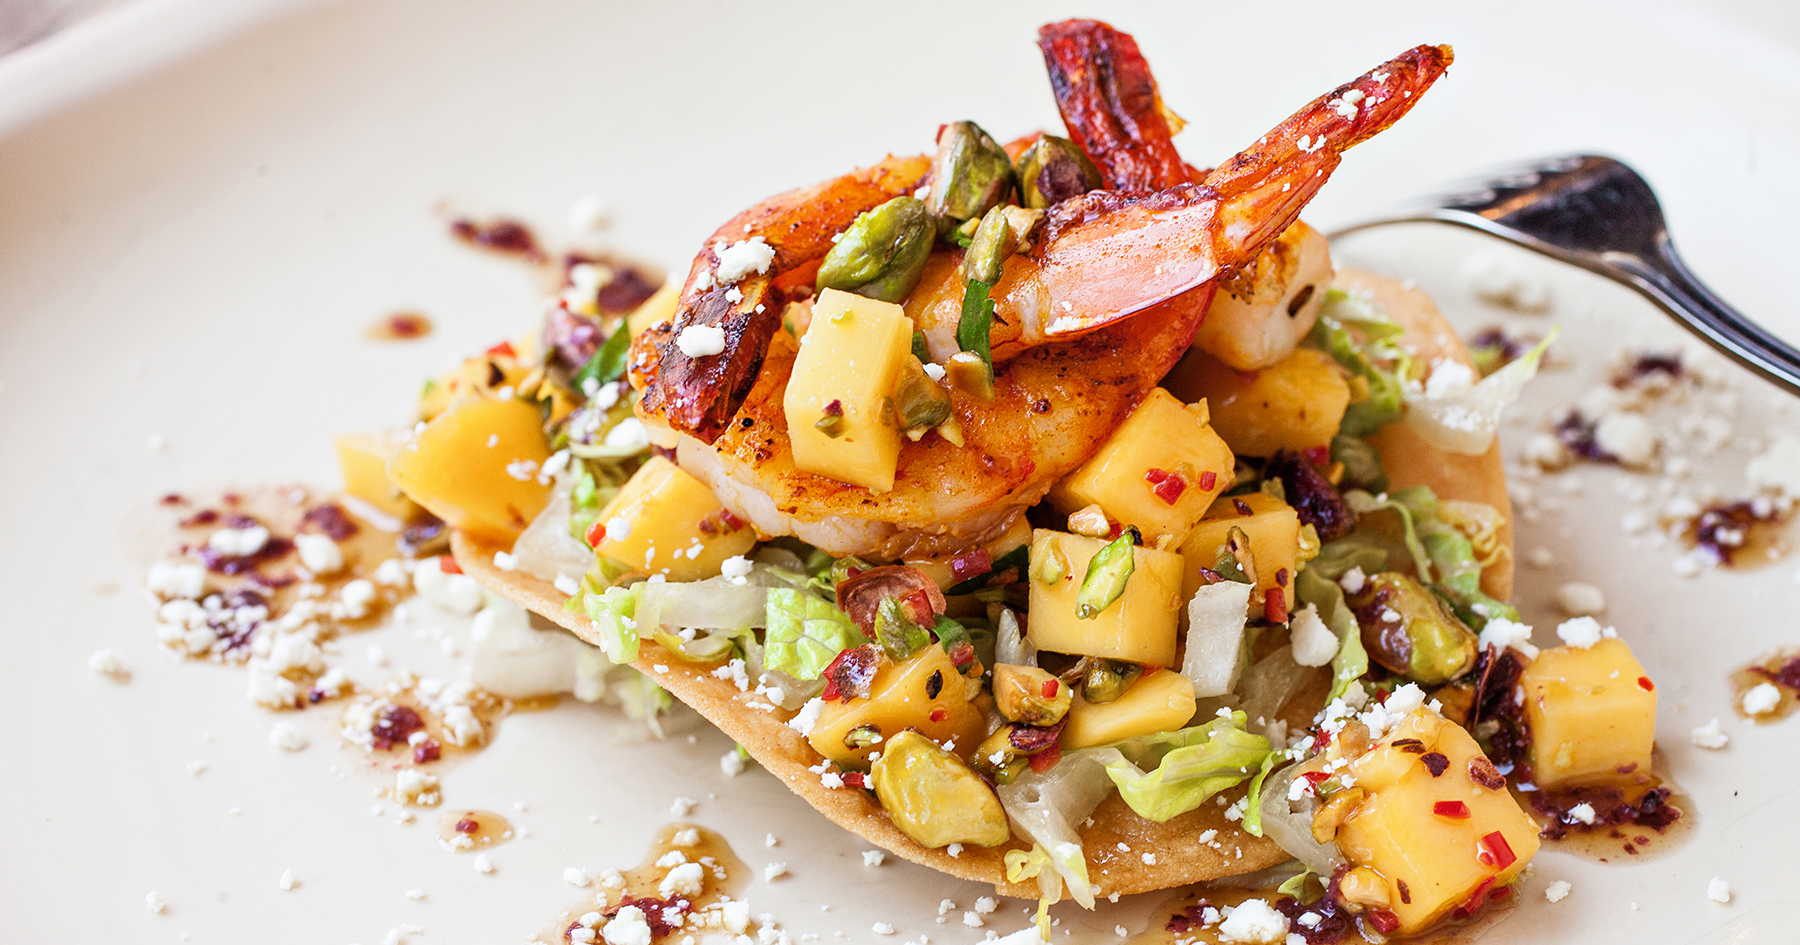 Lowcountry Shrimp Tostadas with Mango-Pistachio Salsa